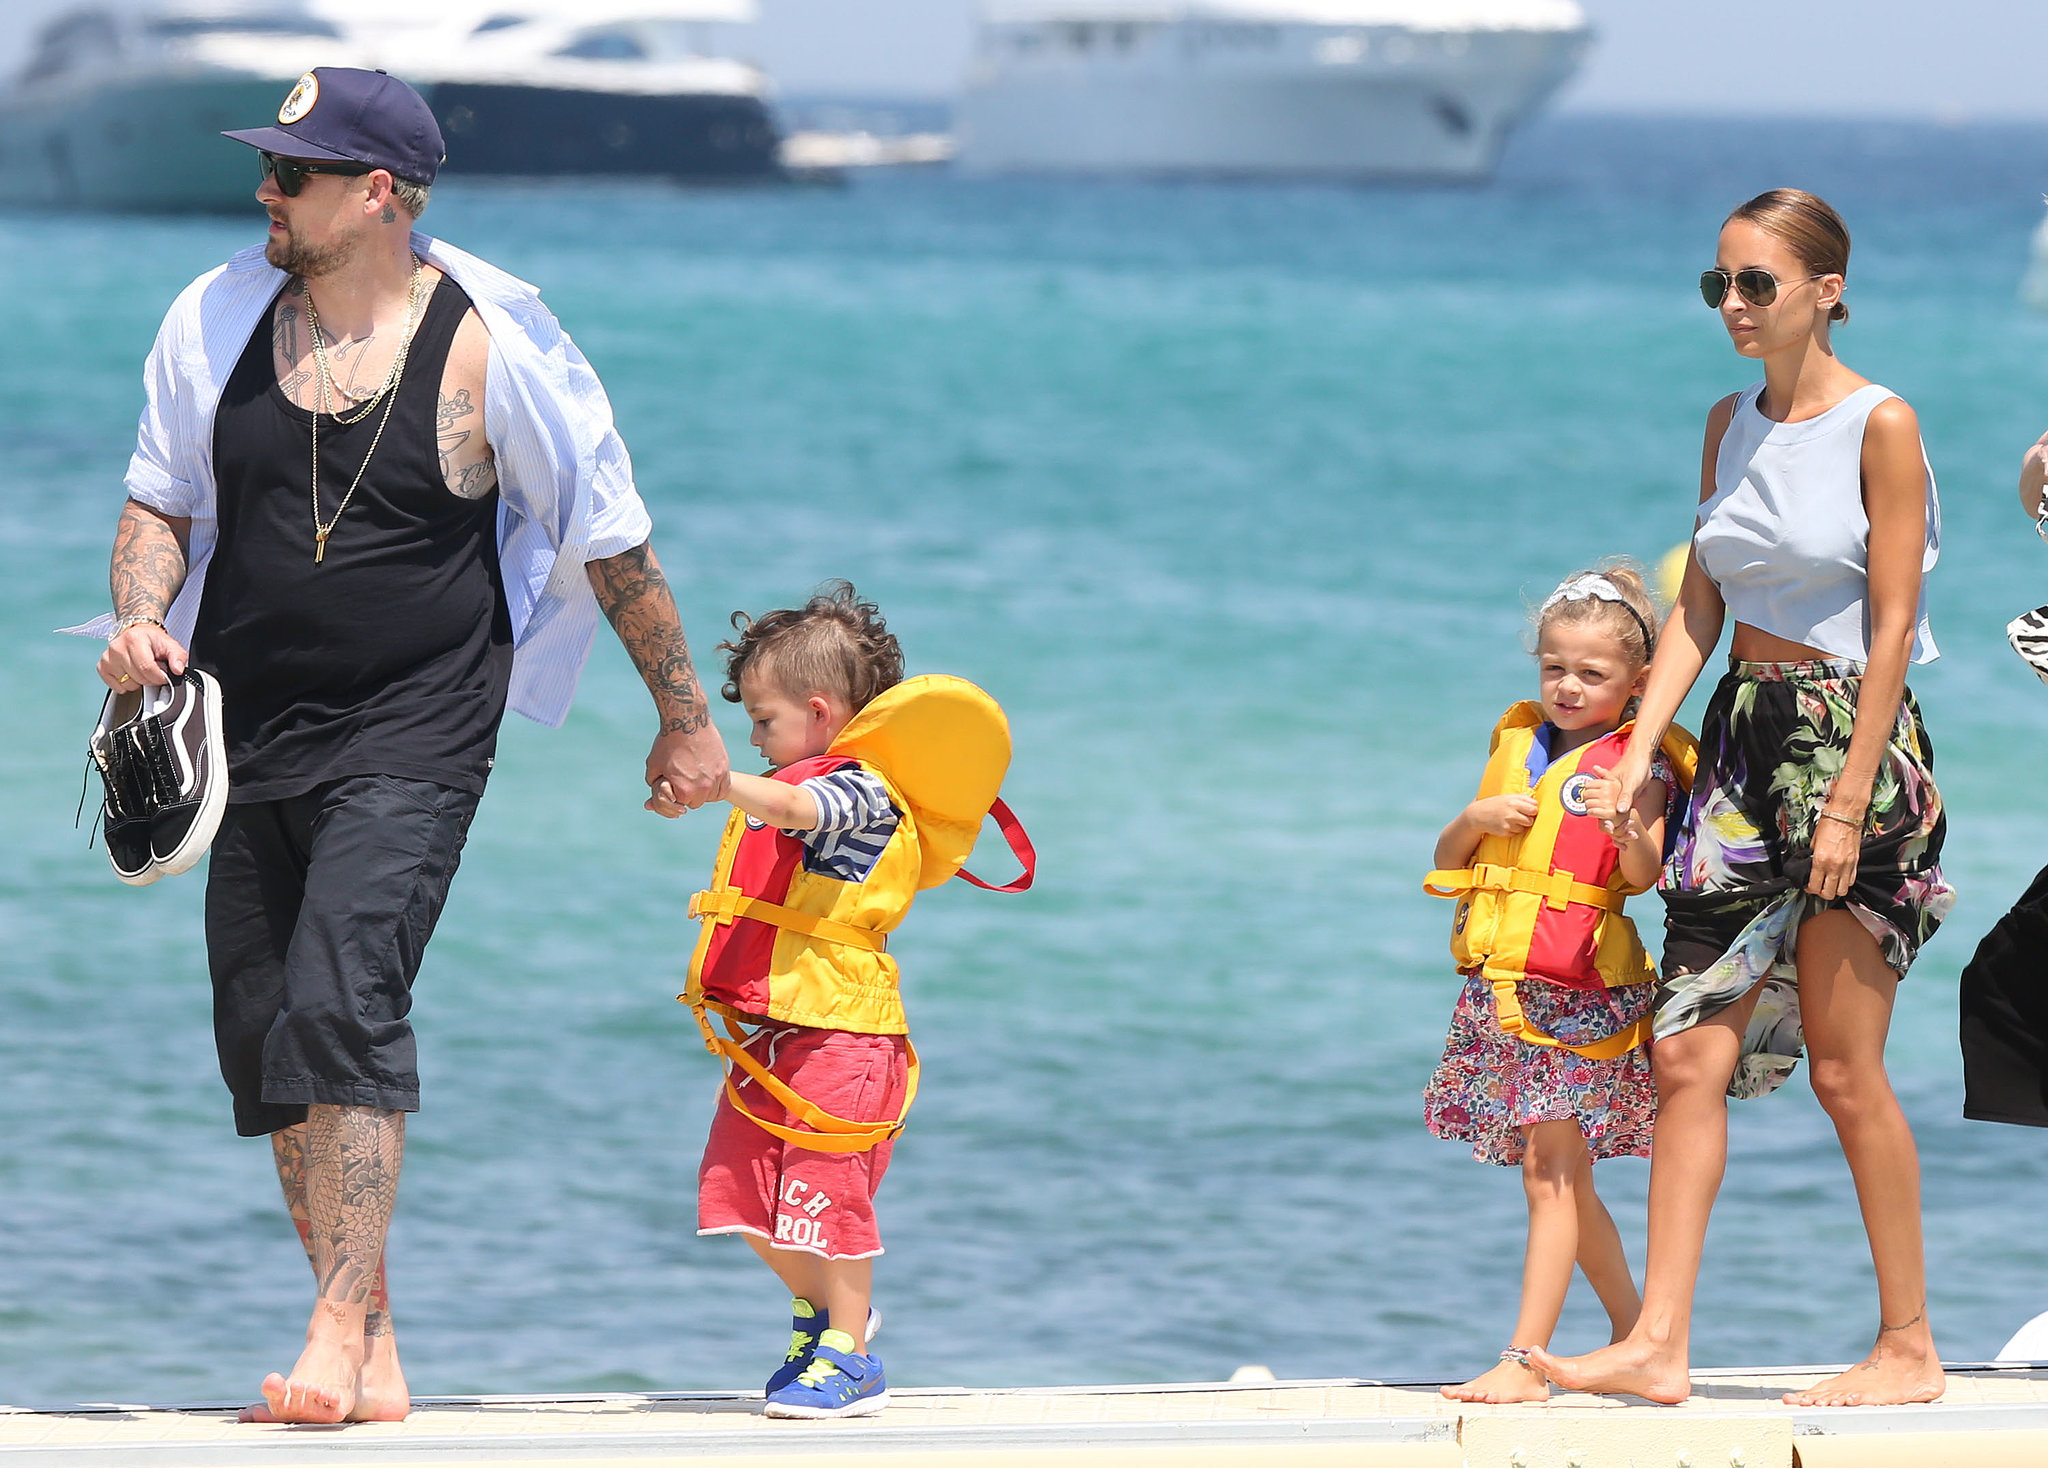 Nicole Richie joined her husband, Joel Madden, and their kids, Harlow and Sparrow, for a walk to the beach during their July 2013 vacation in St.-Tropez.